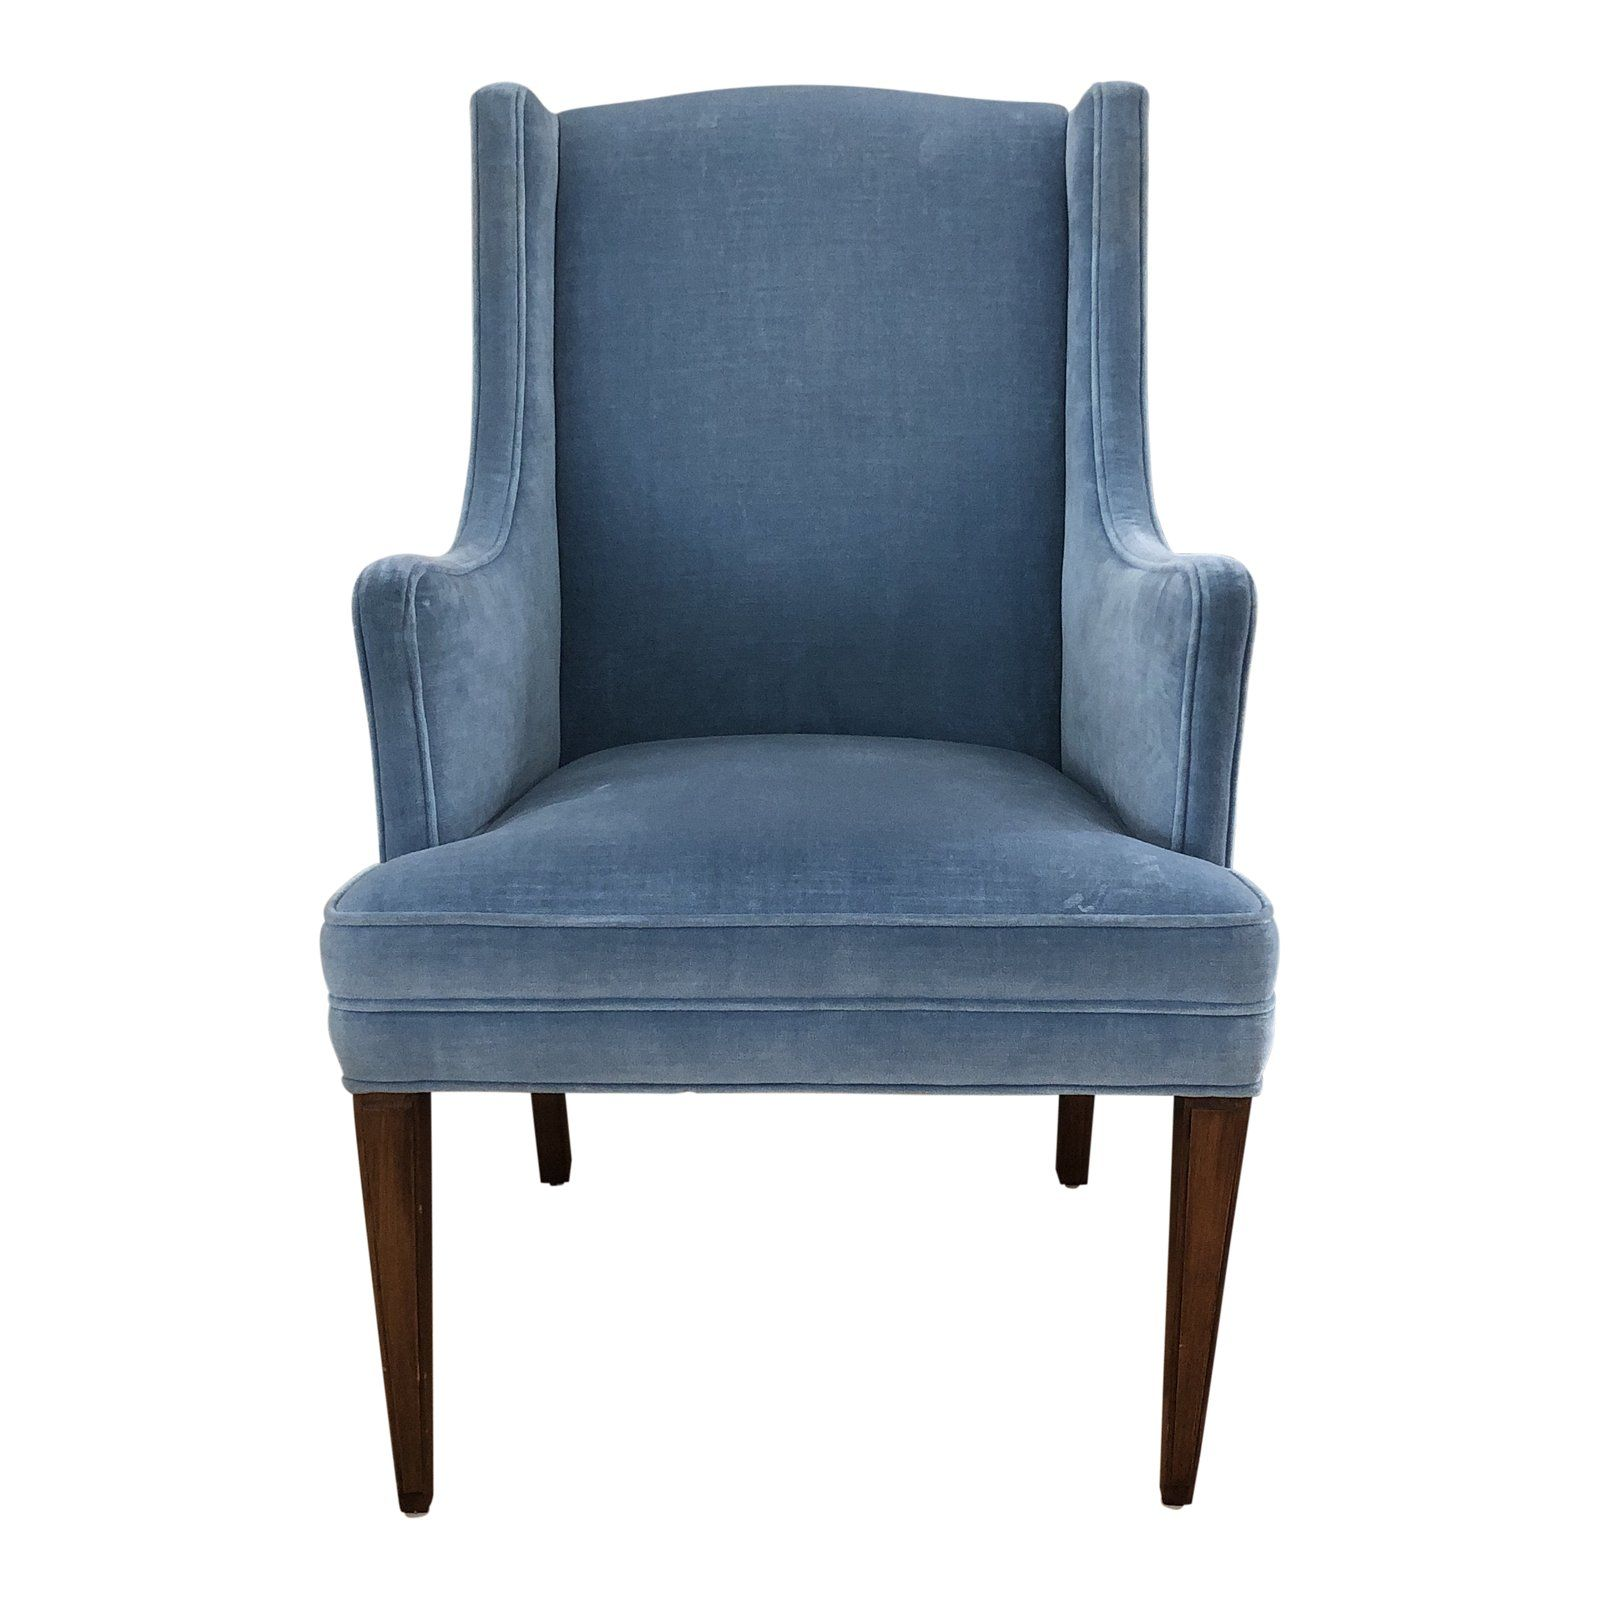 blue velvet accent chair with silver legs